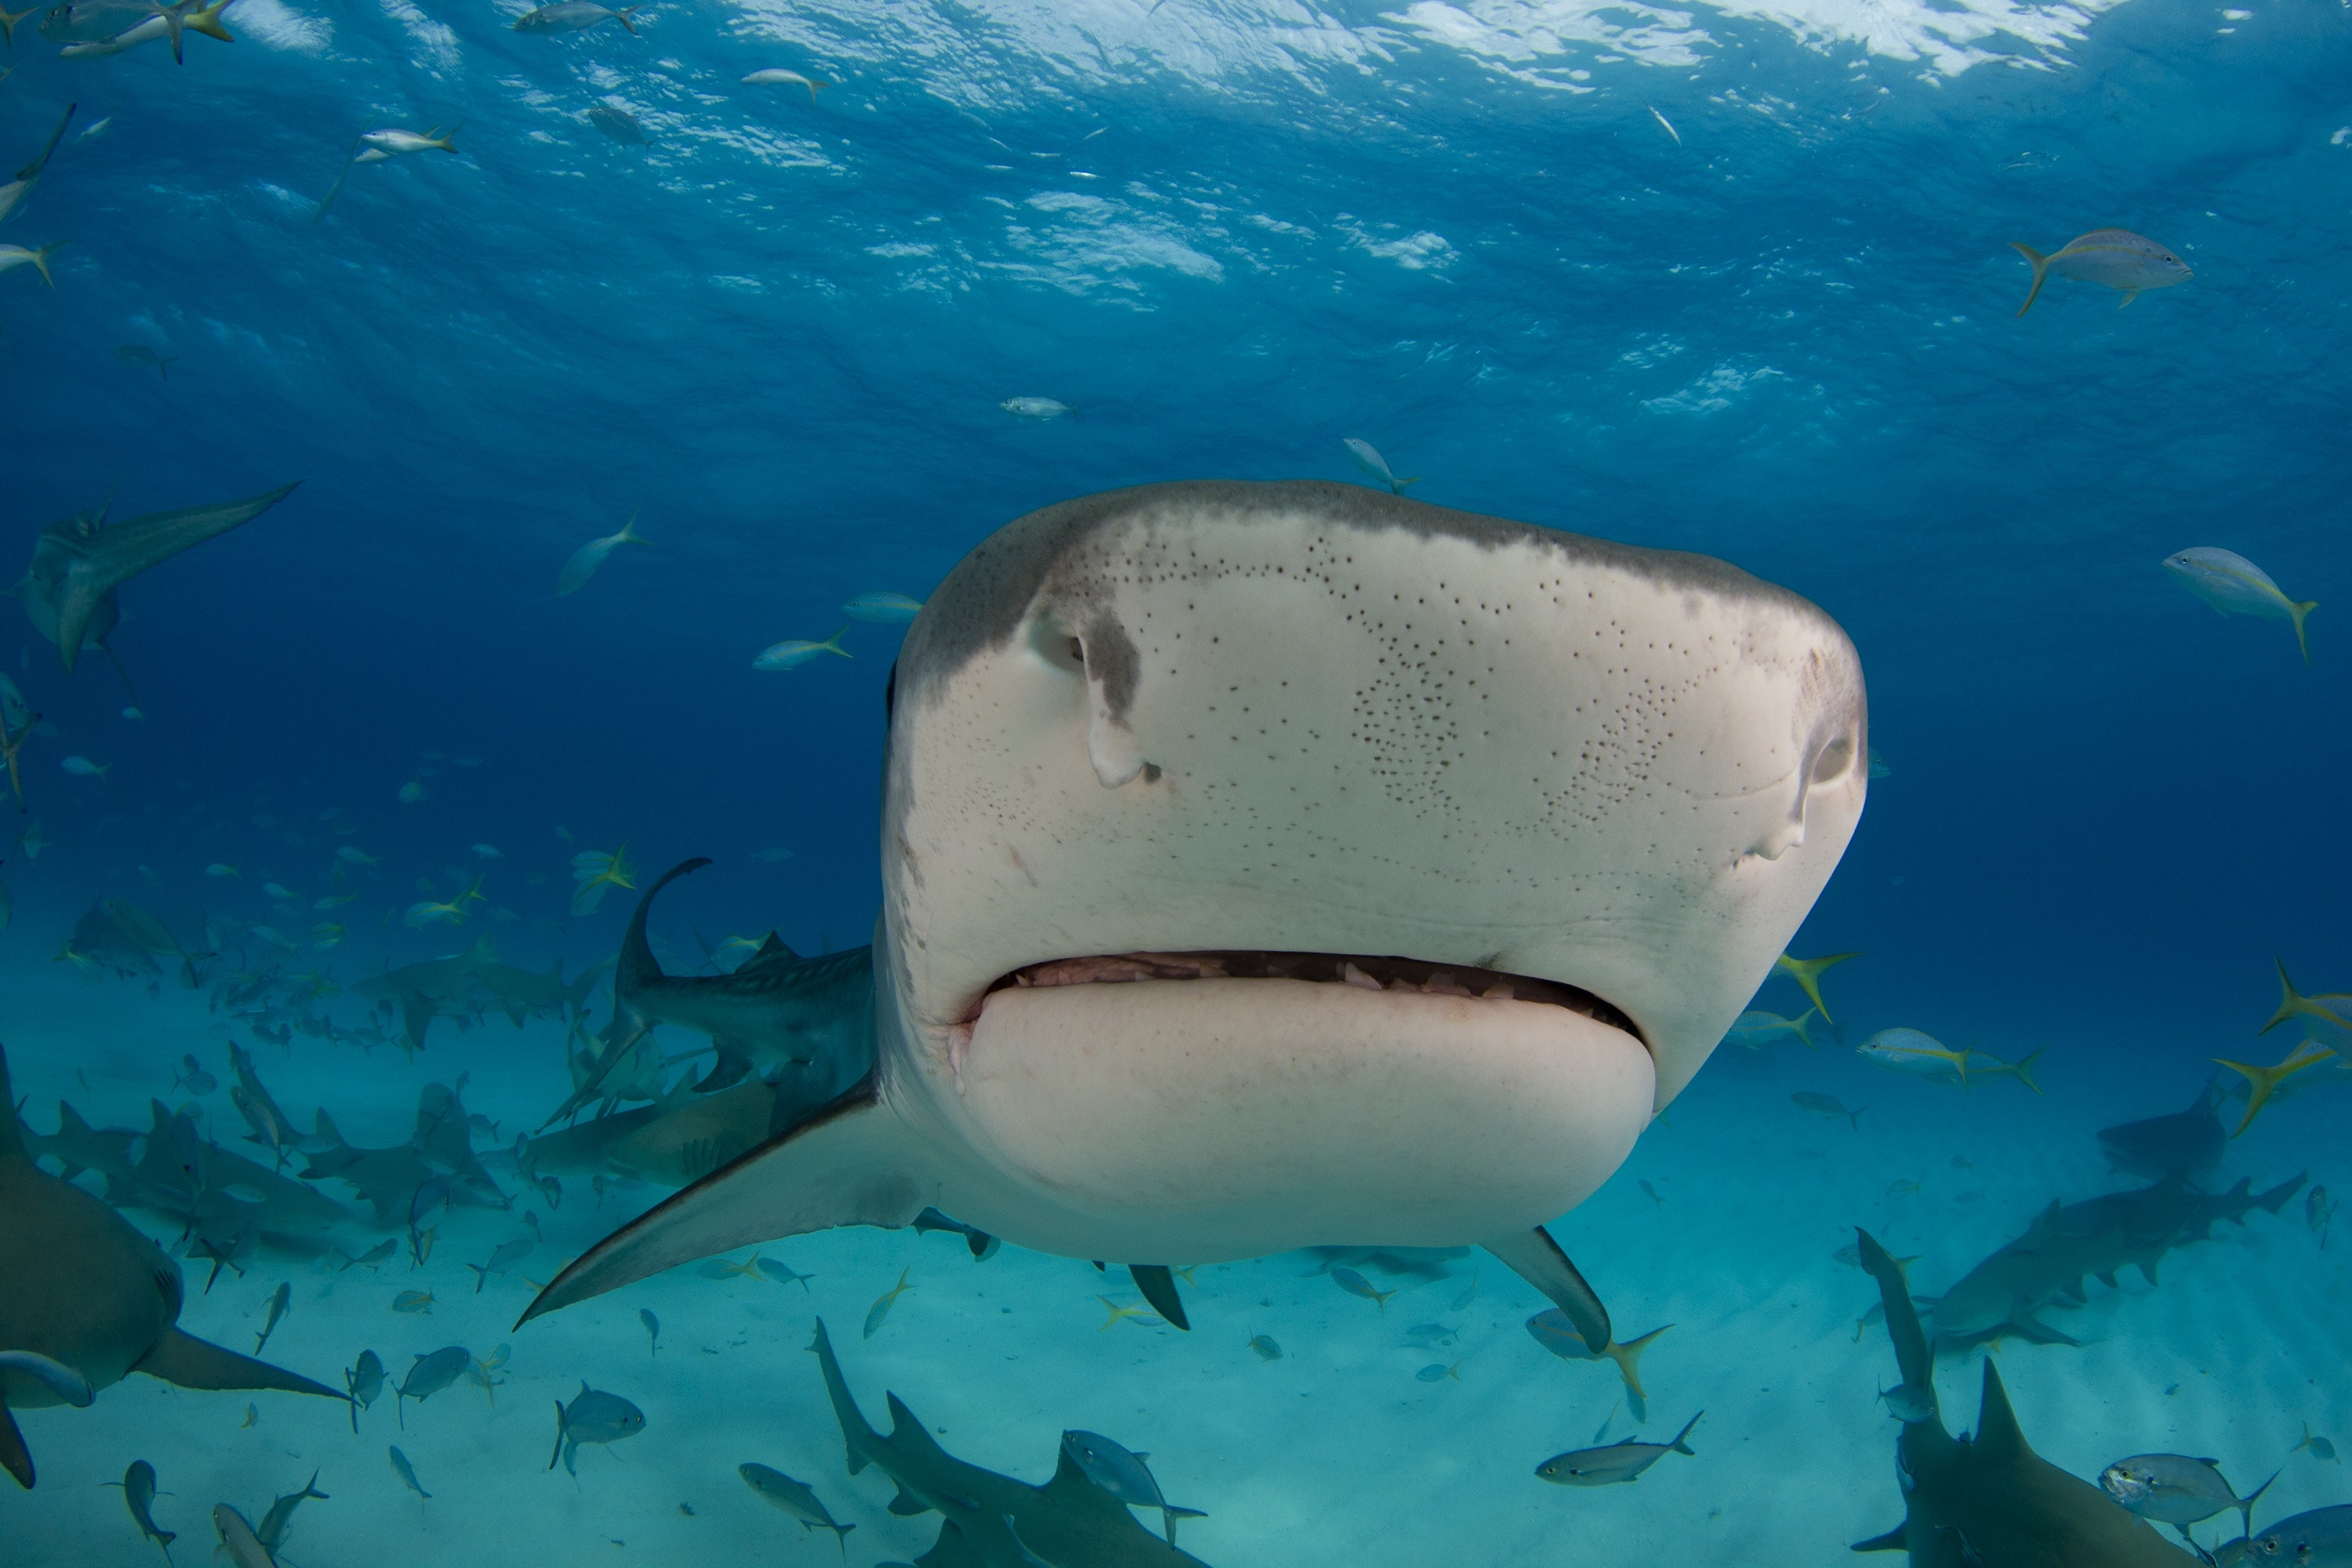 The shocking facts revealed: how sharks and other animals evolved electroreception to find their prey